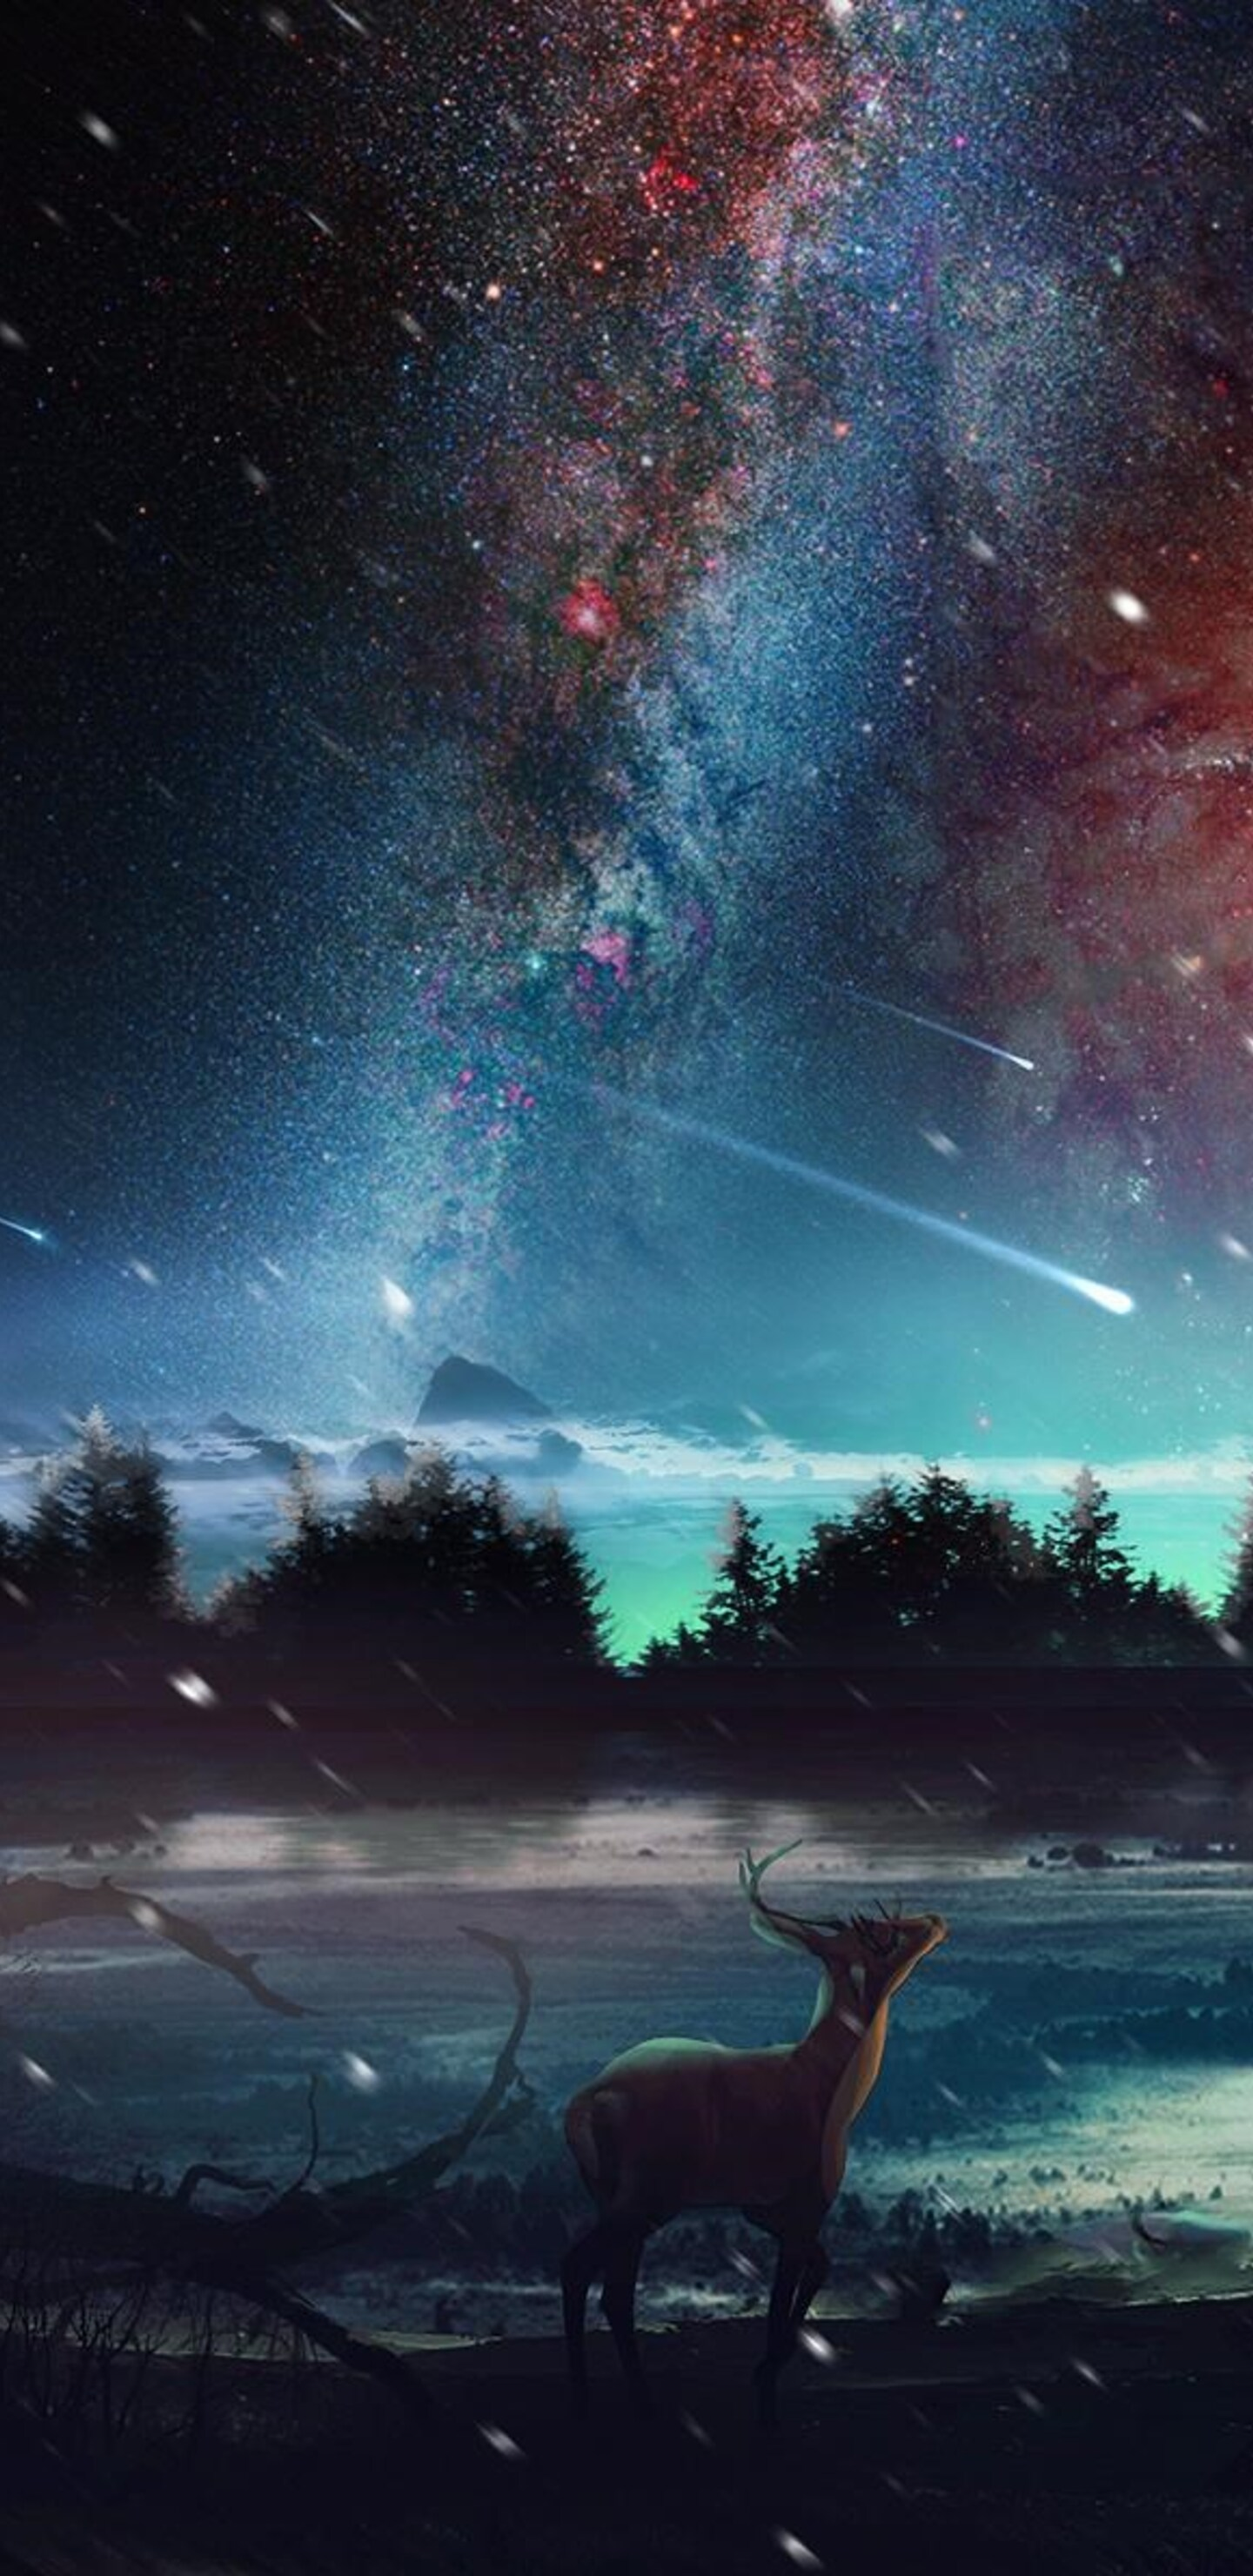 Samsung S8 3d Wallpaper Download 1440x2960 Universe Scenery Samsung Galaxy Note 9 8 S9 S8